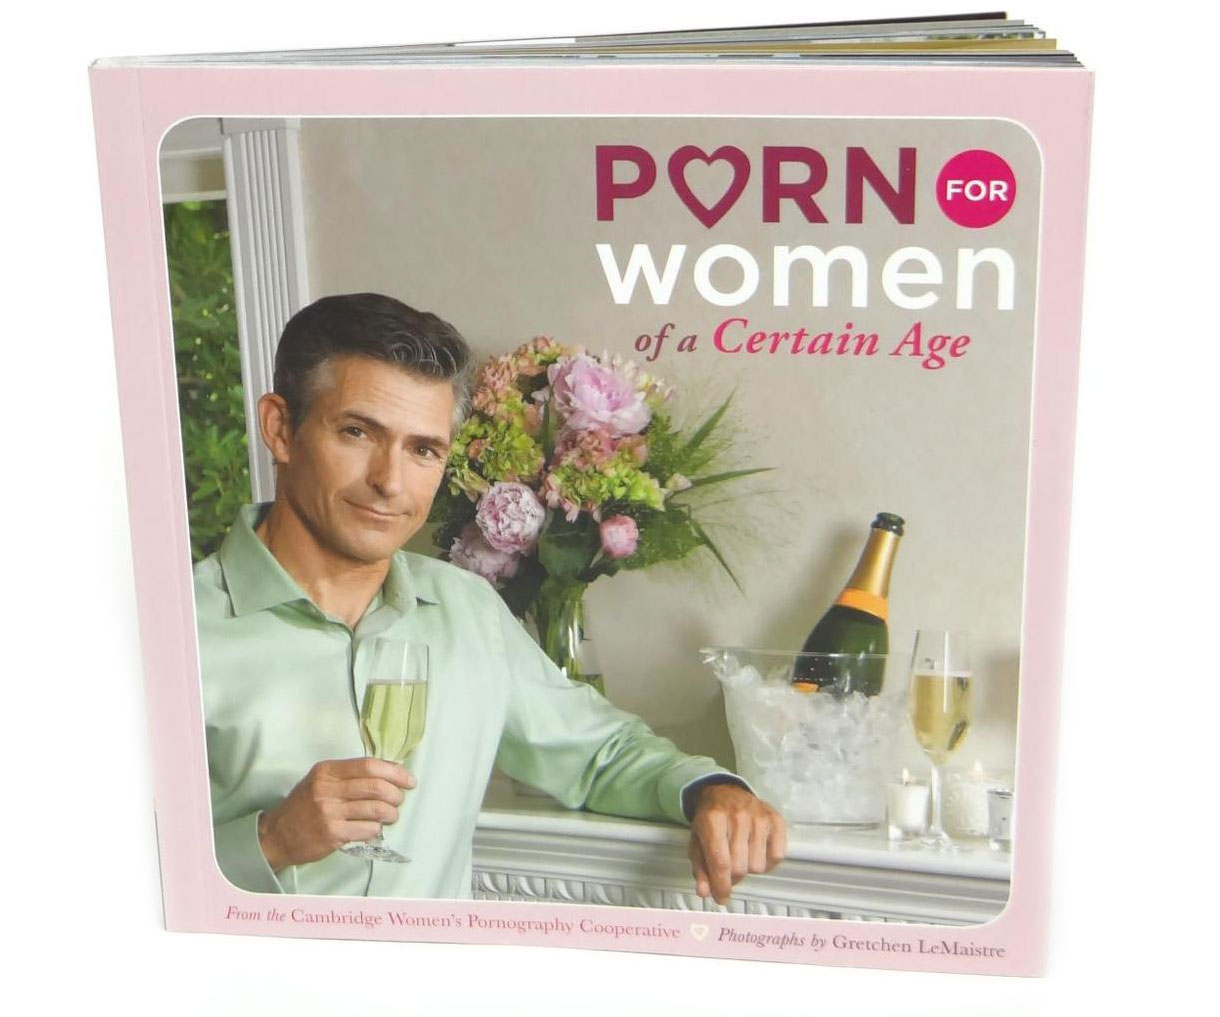 Porn For Women Of A Certain Age - coolthings.us